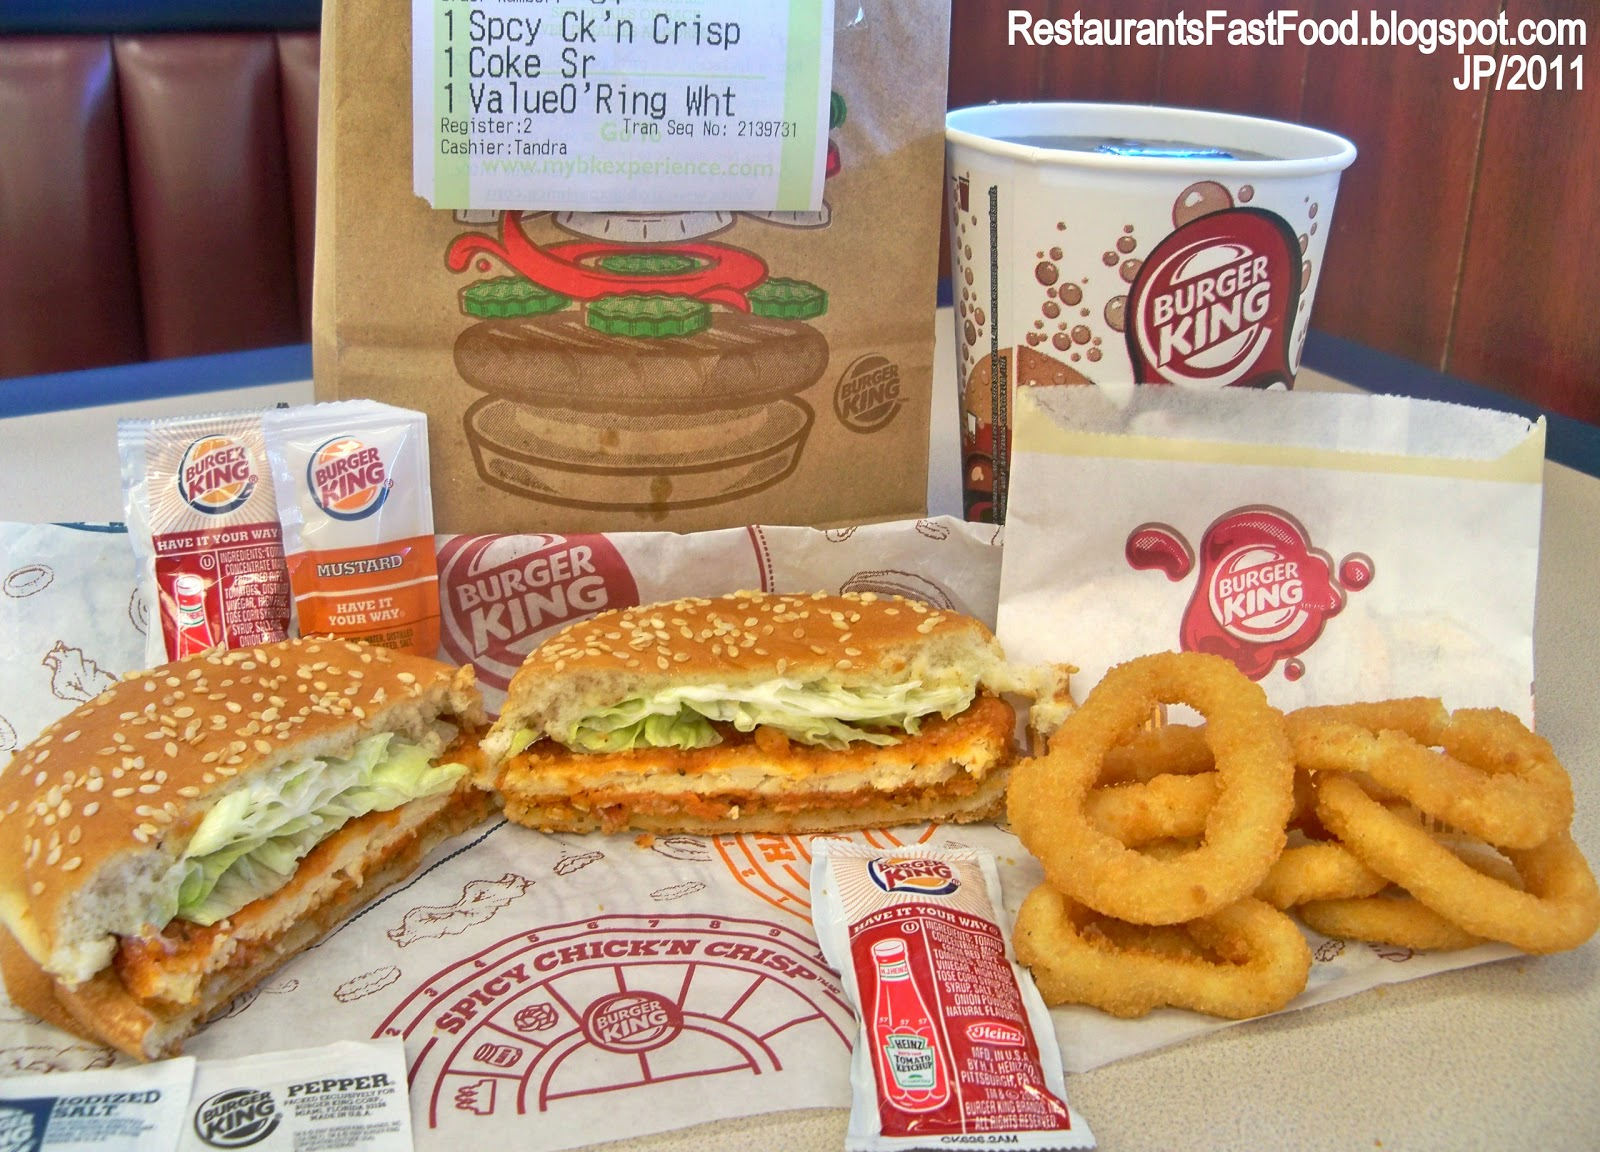 Fast Food Restaurants With Onion Rings